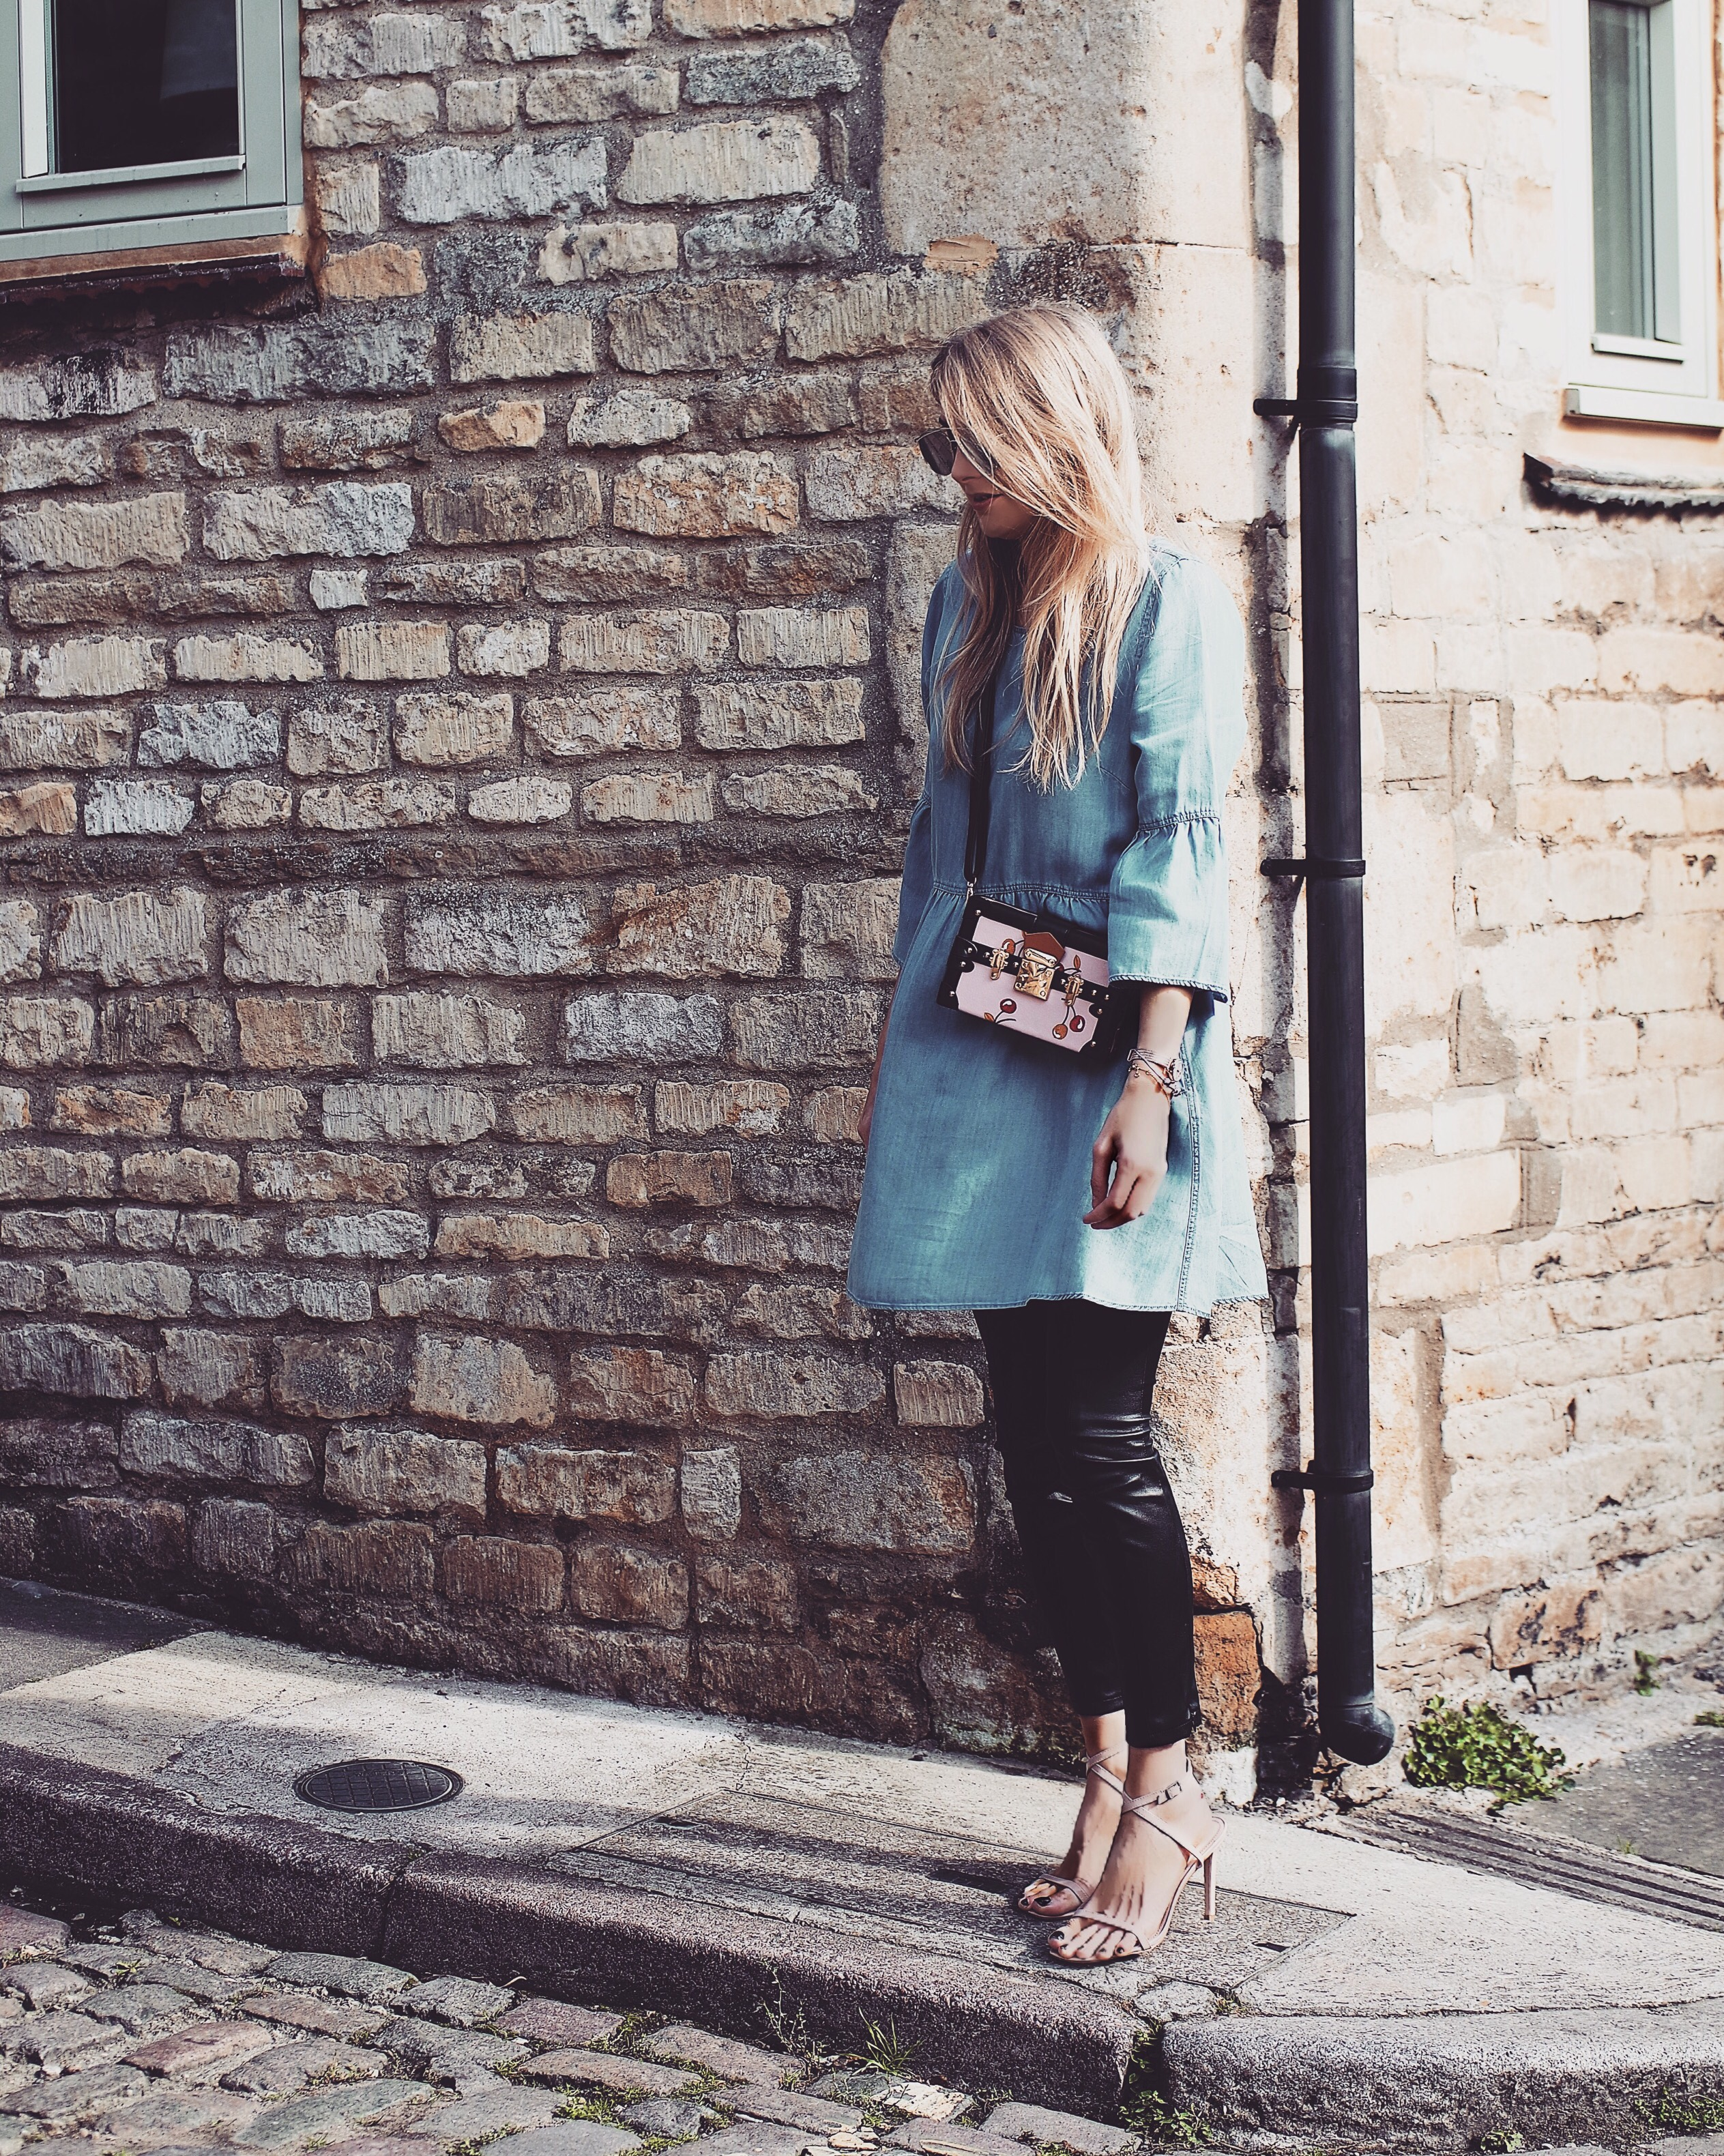 LFW Streetstyle - Fashion Blogger Outfit